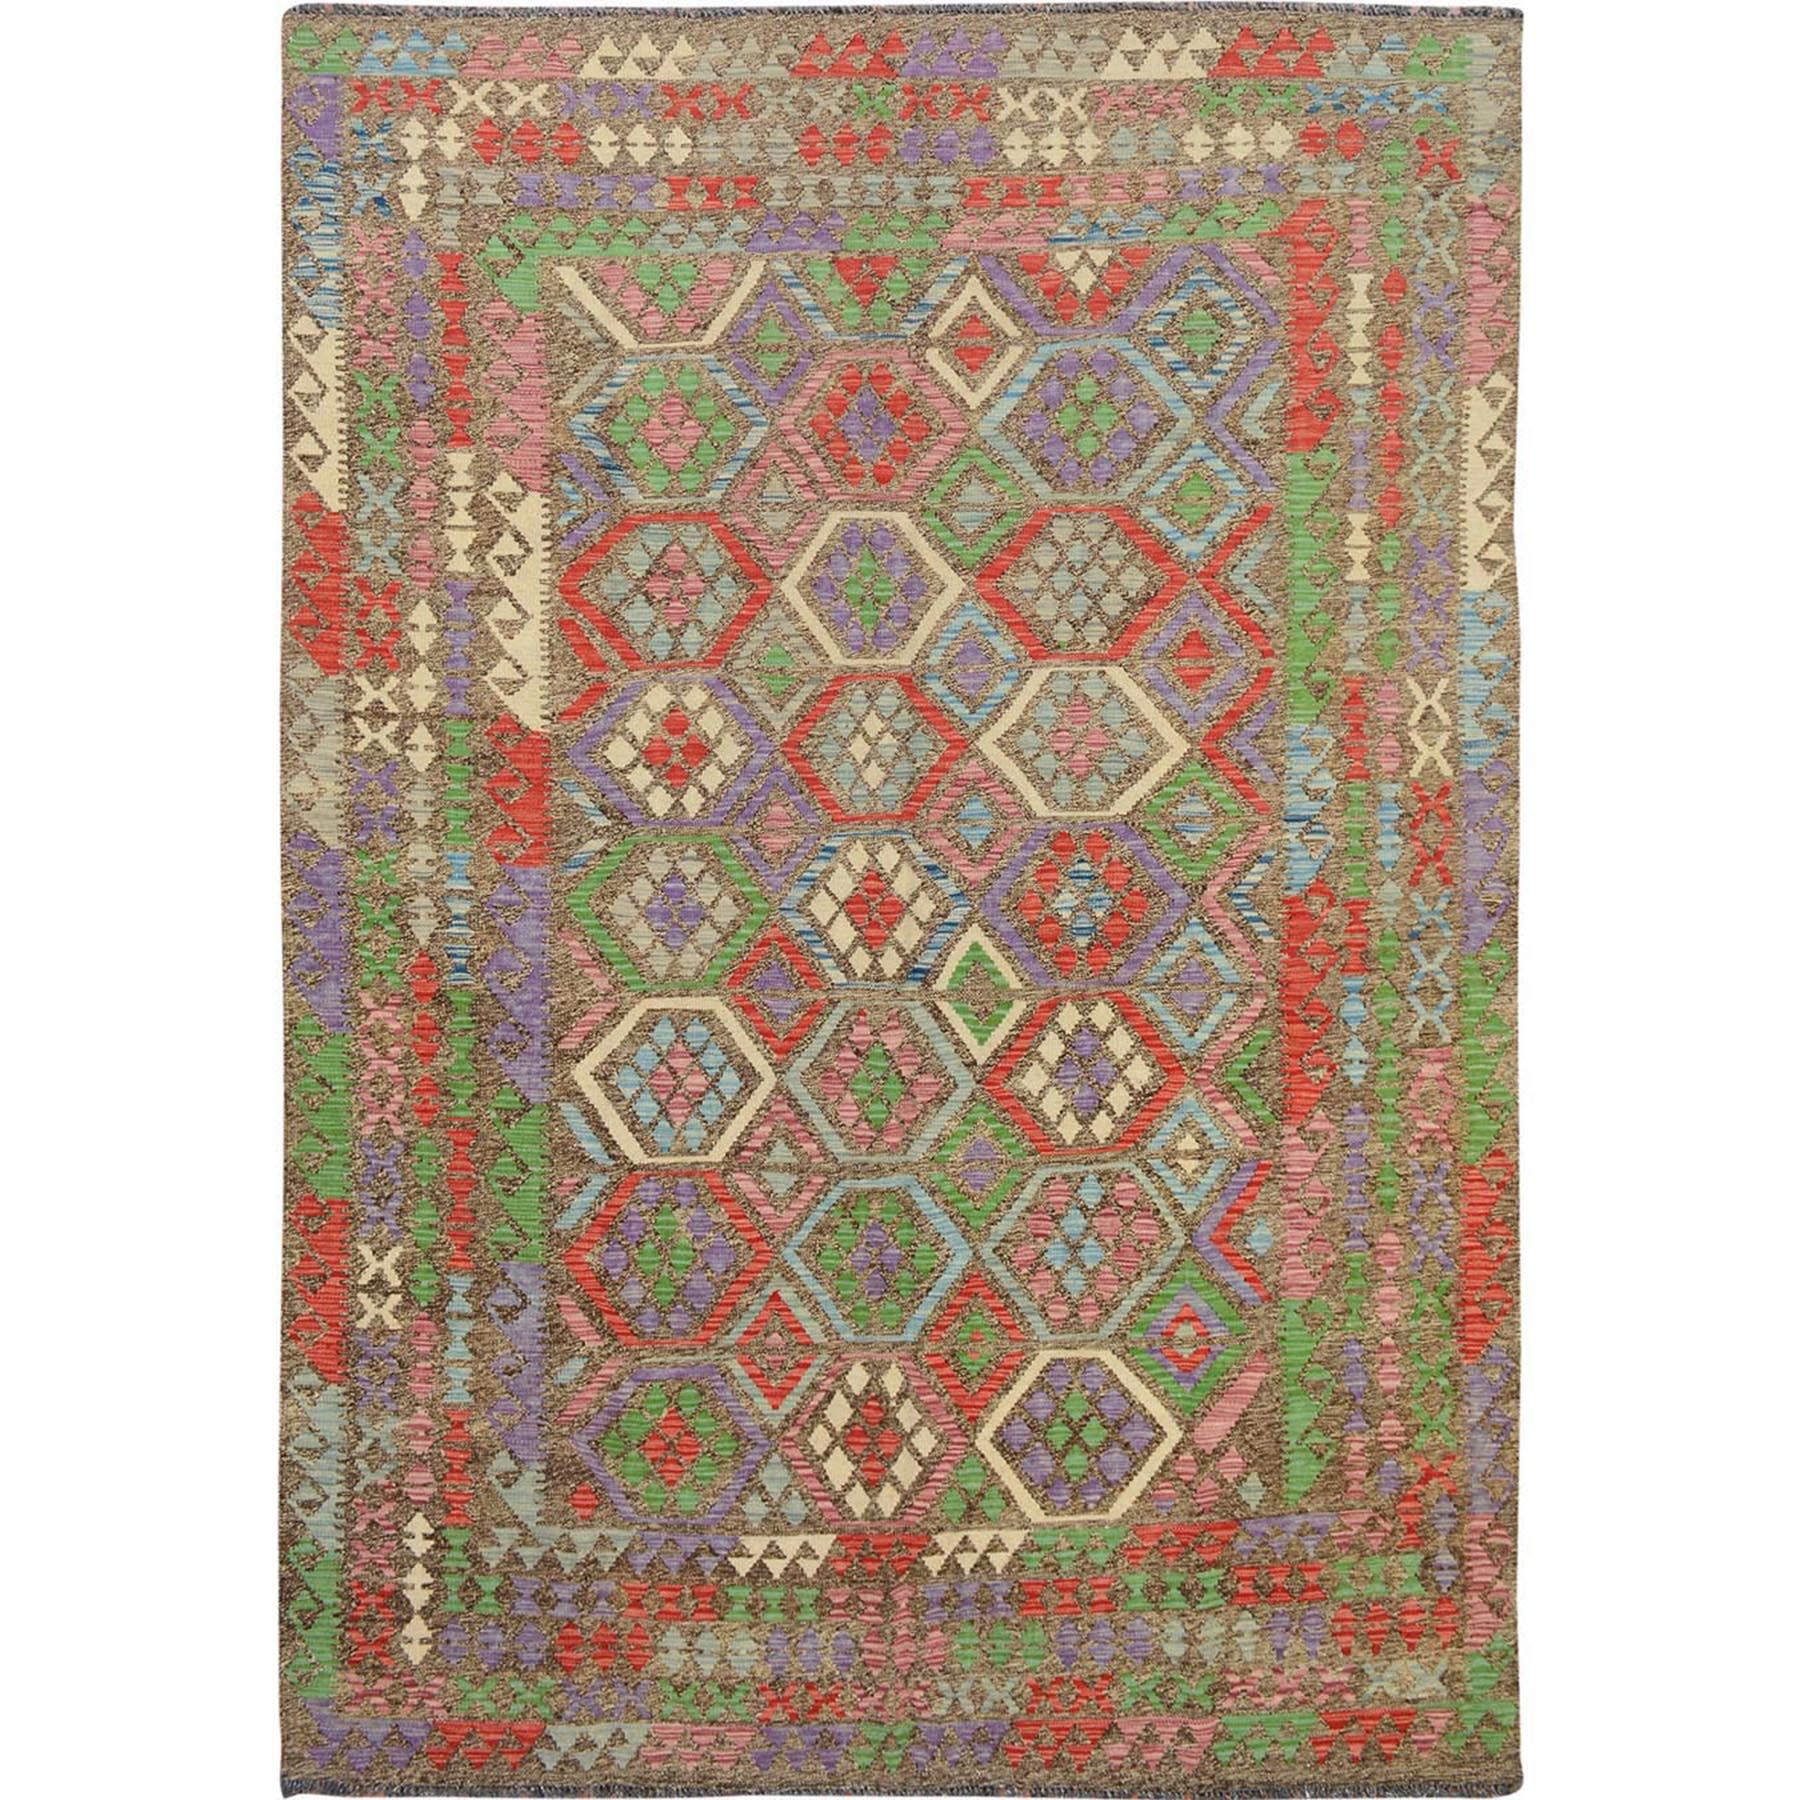 "6'9""x9'8""Colorful Reversible Flat weave Afghan Kilim Pure Wool Hand Woven Oriental Rug"